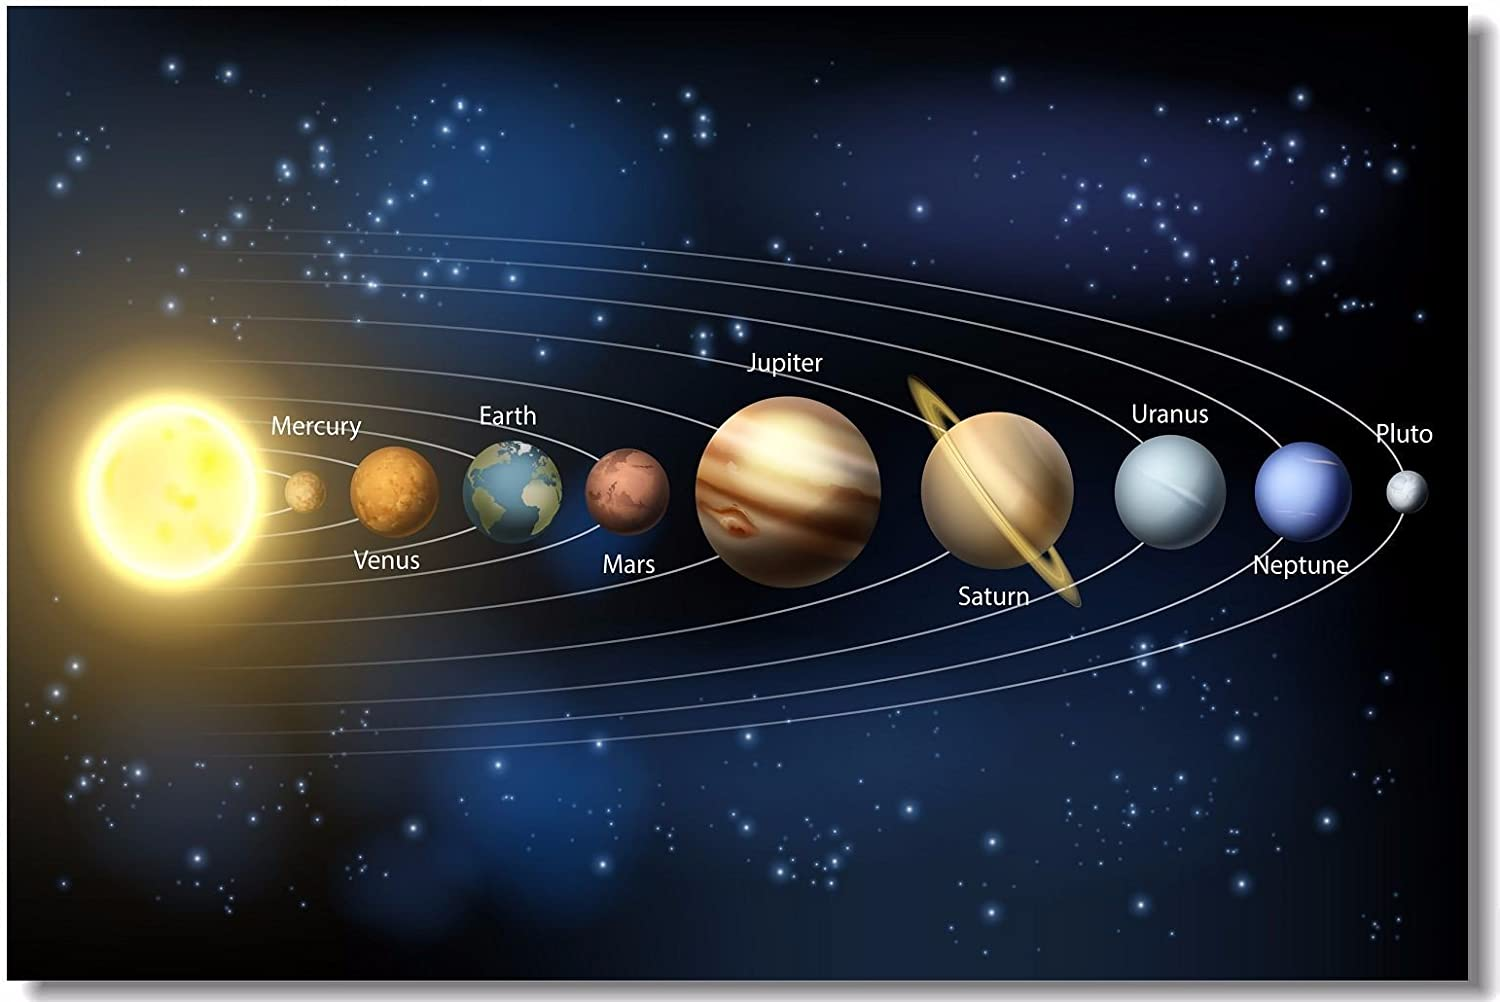 Amazon Com 1x Poster Solar System Sun 9 Planet Mercury Venus Earth Mars Jupiter Saturn Uranus Neptune Office Home Room Wall Deco 35 5x23 5 90x60cm 003 Posters Prints